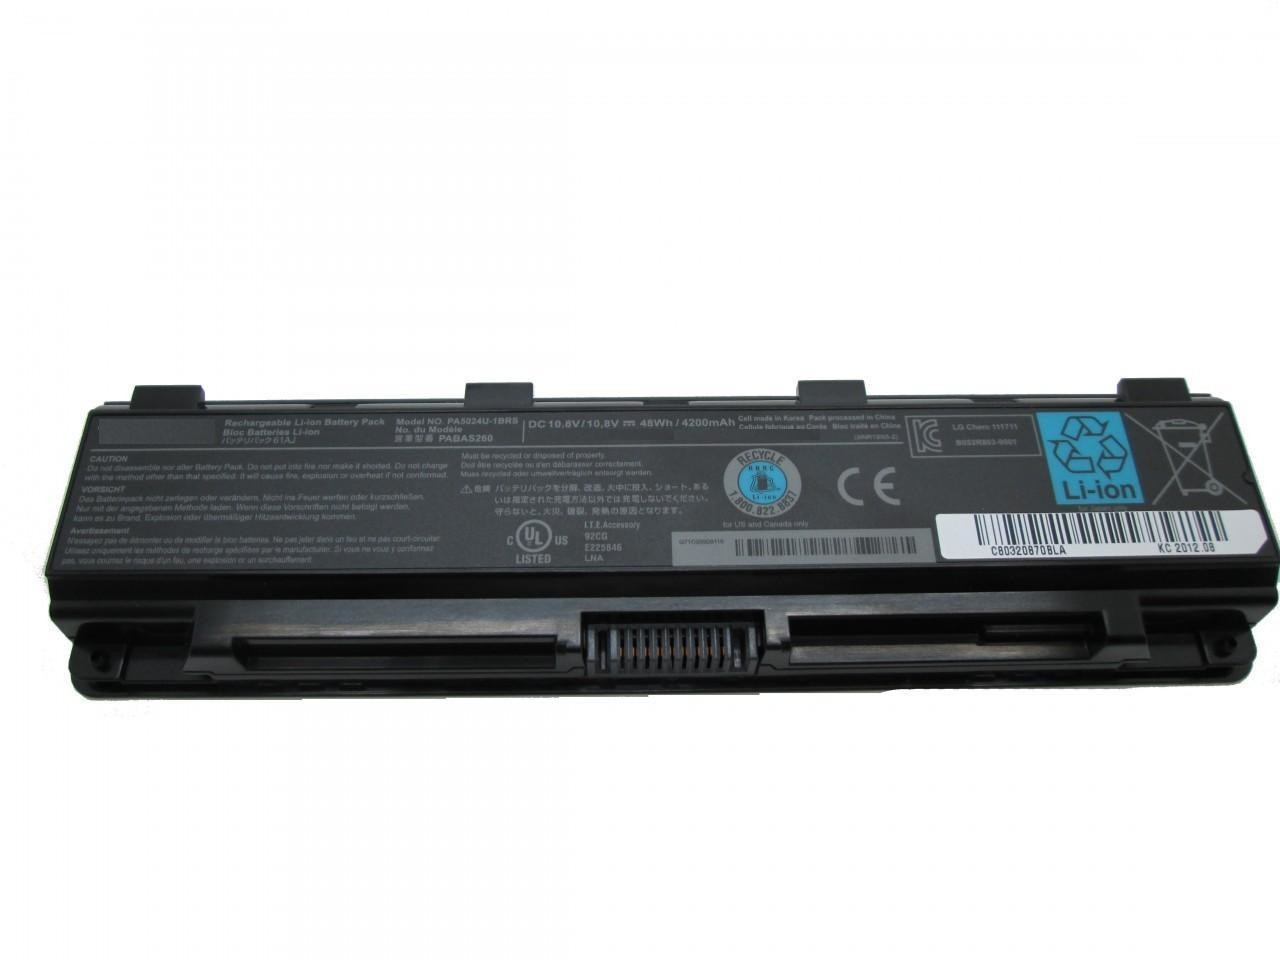 Toshiba satellite PA5110U  PA5027U PA5026U  PA5025U  compatible laptop battery